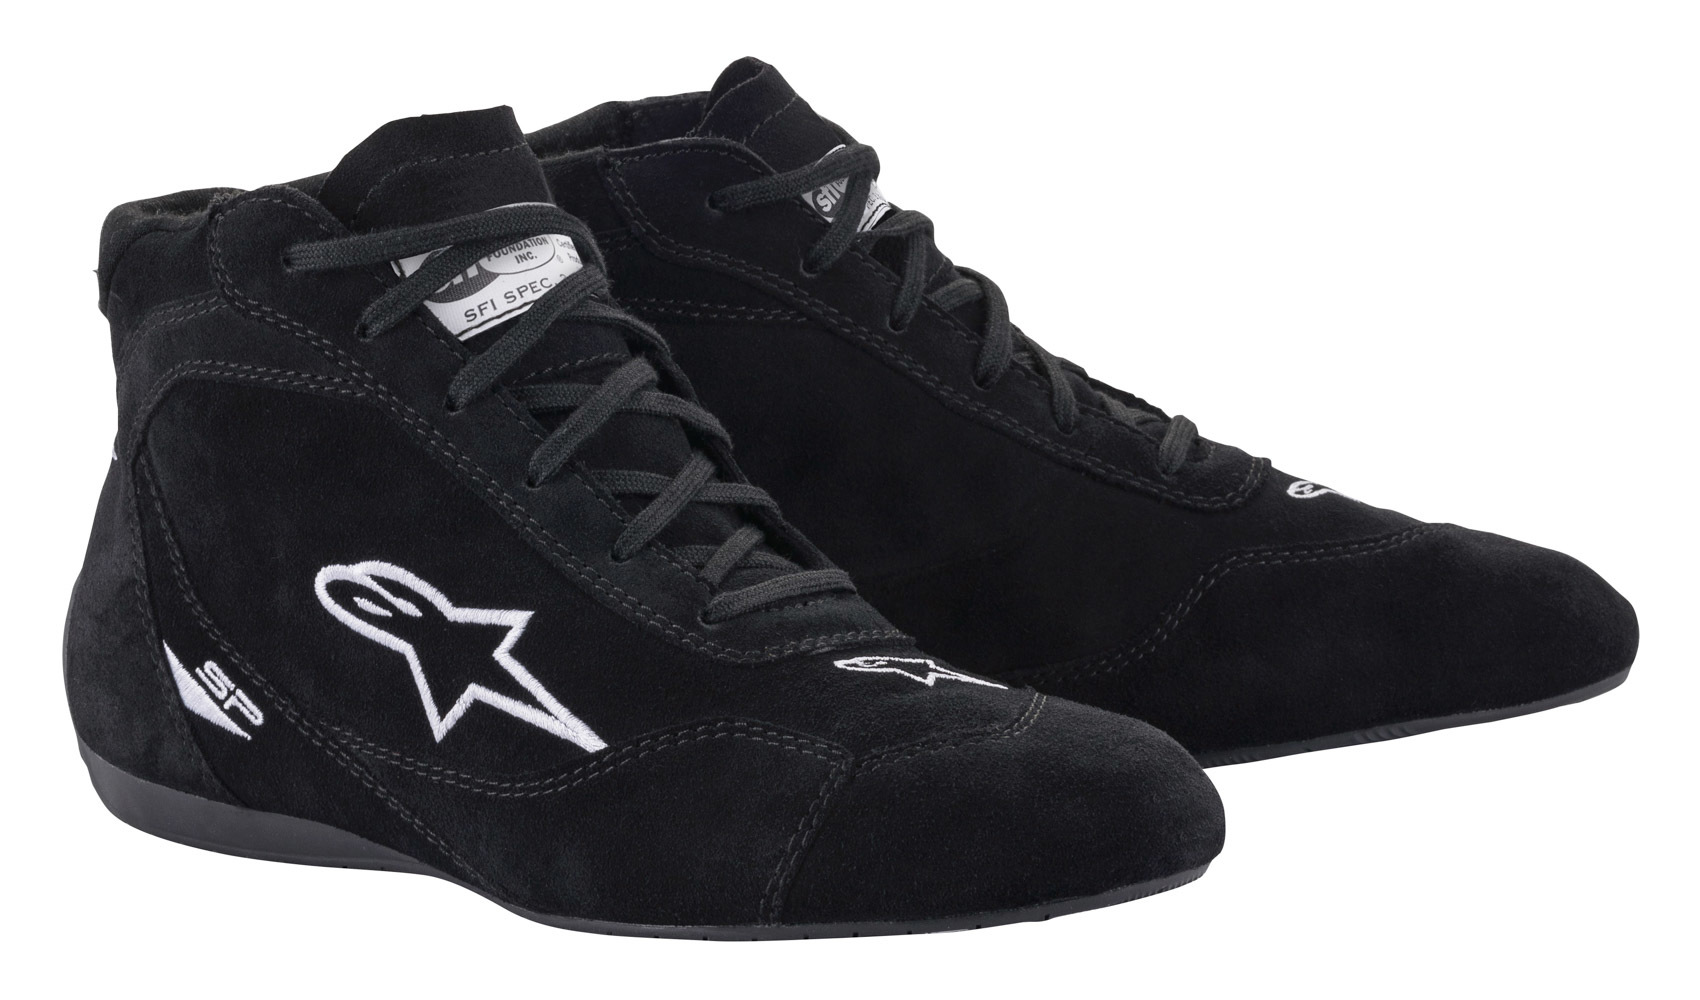 Alpinestars USA 2710621-10-9 Shoe, SP V2, Driving, Mid-Top, SFI3.3/5, Suede Outer, Nomex Inner, Black, Size 9, Pair